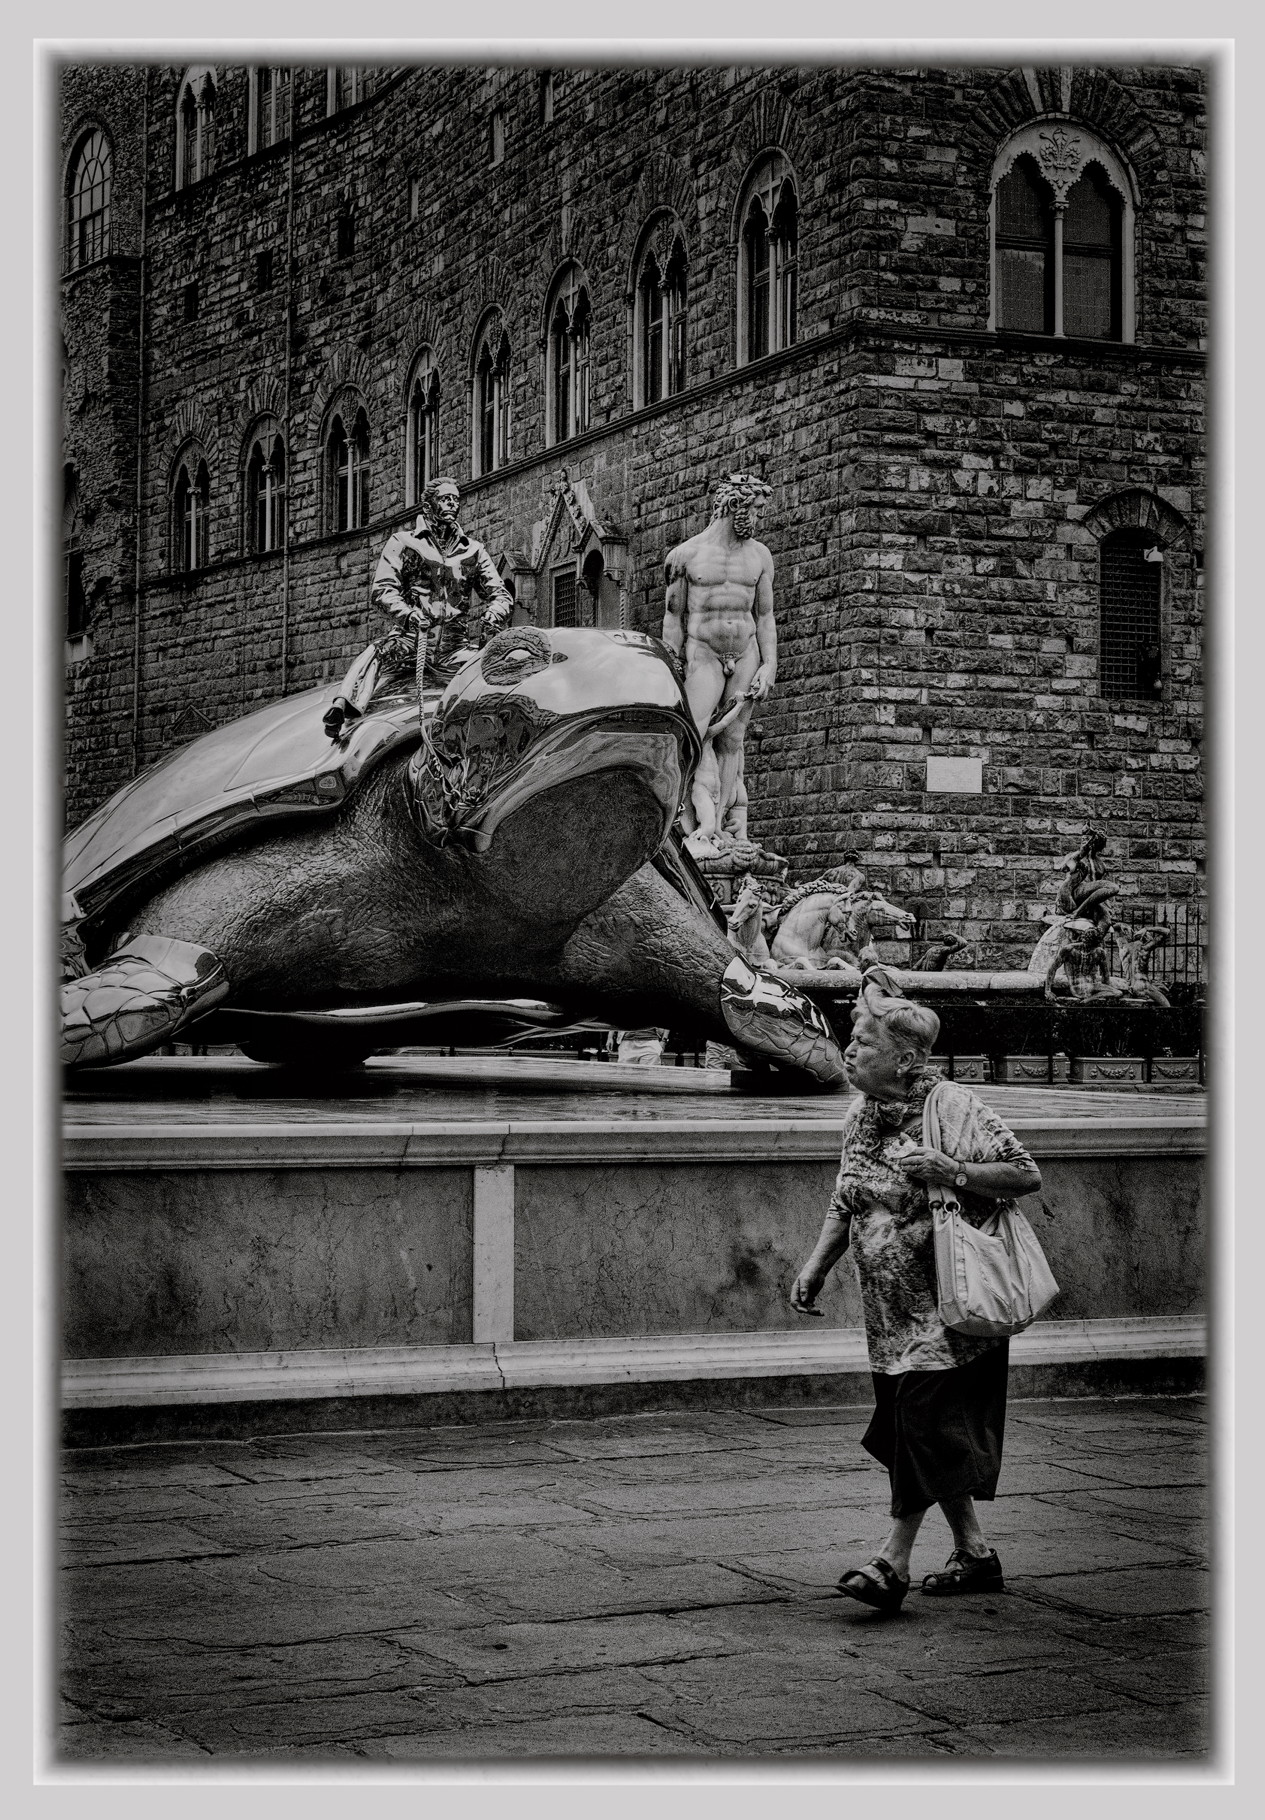 Woman and the Turtle Rider - Monochrome Print (Open) - Name Withheld Per Request